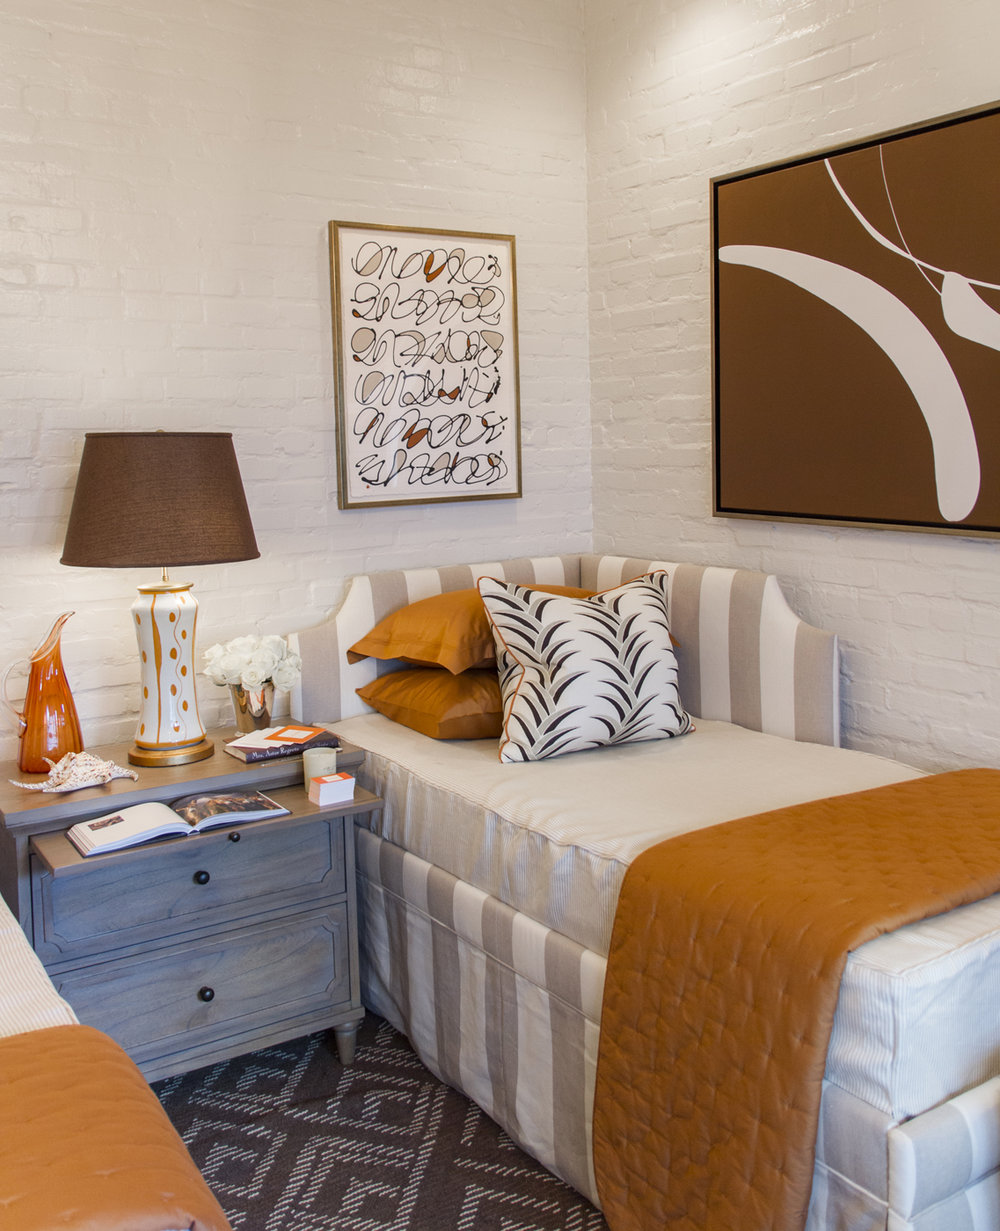 Bedroom in neutral colors with terracotta accents includes artwork by Kayce Hughes   Savage Interior Design